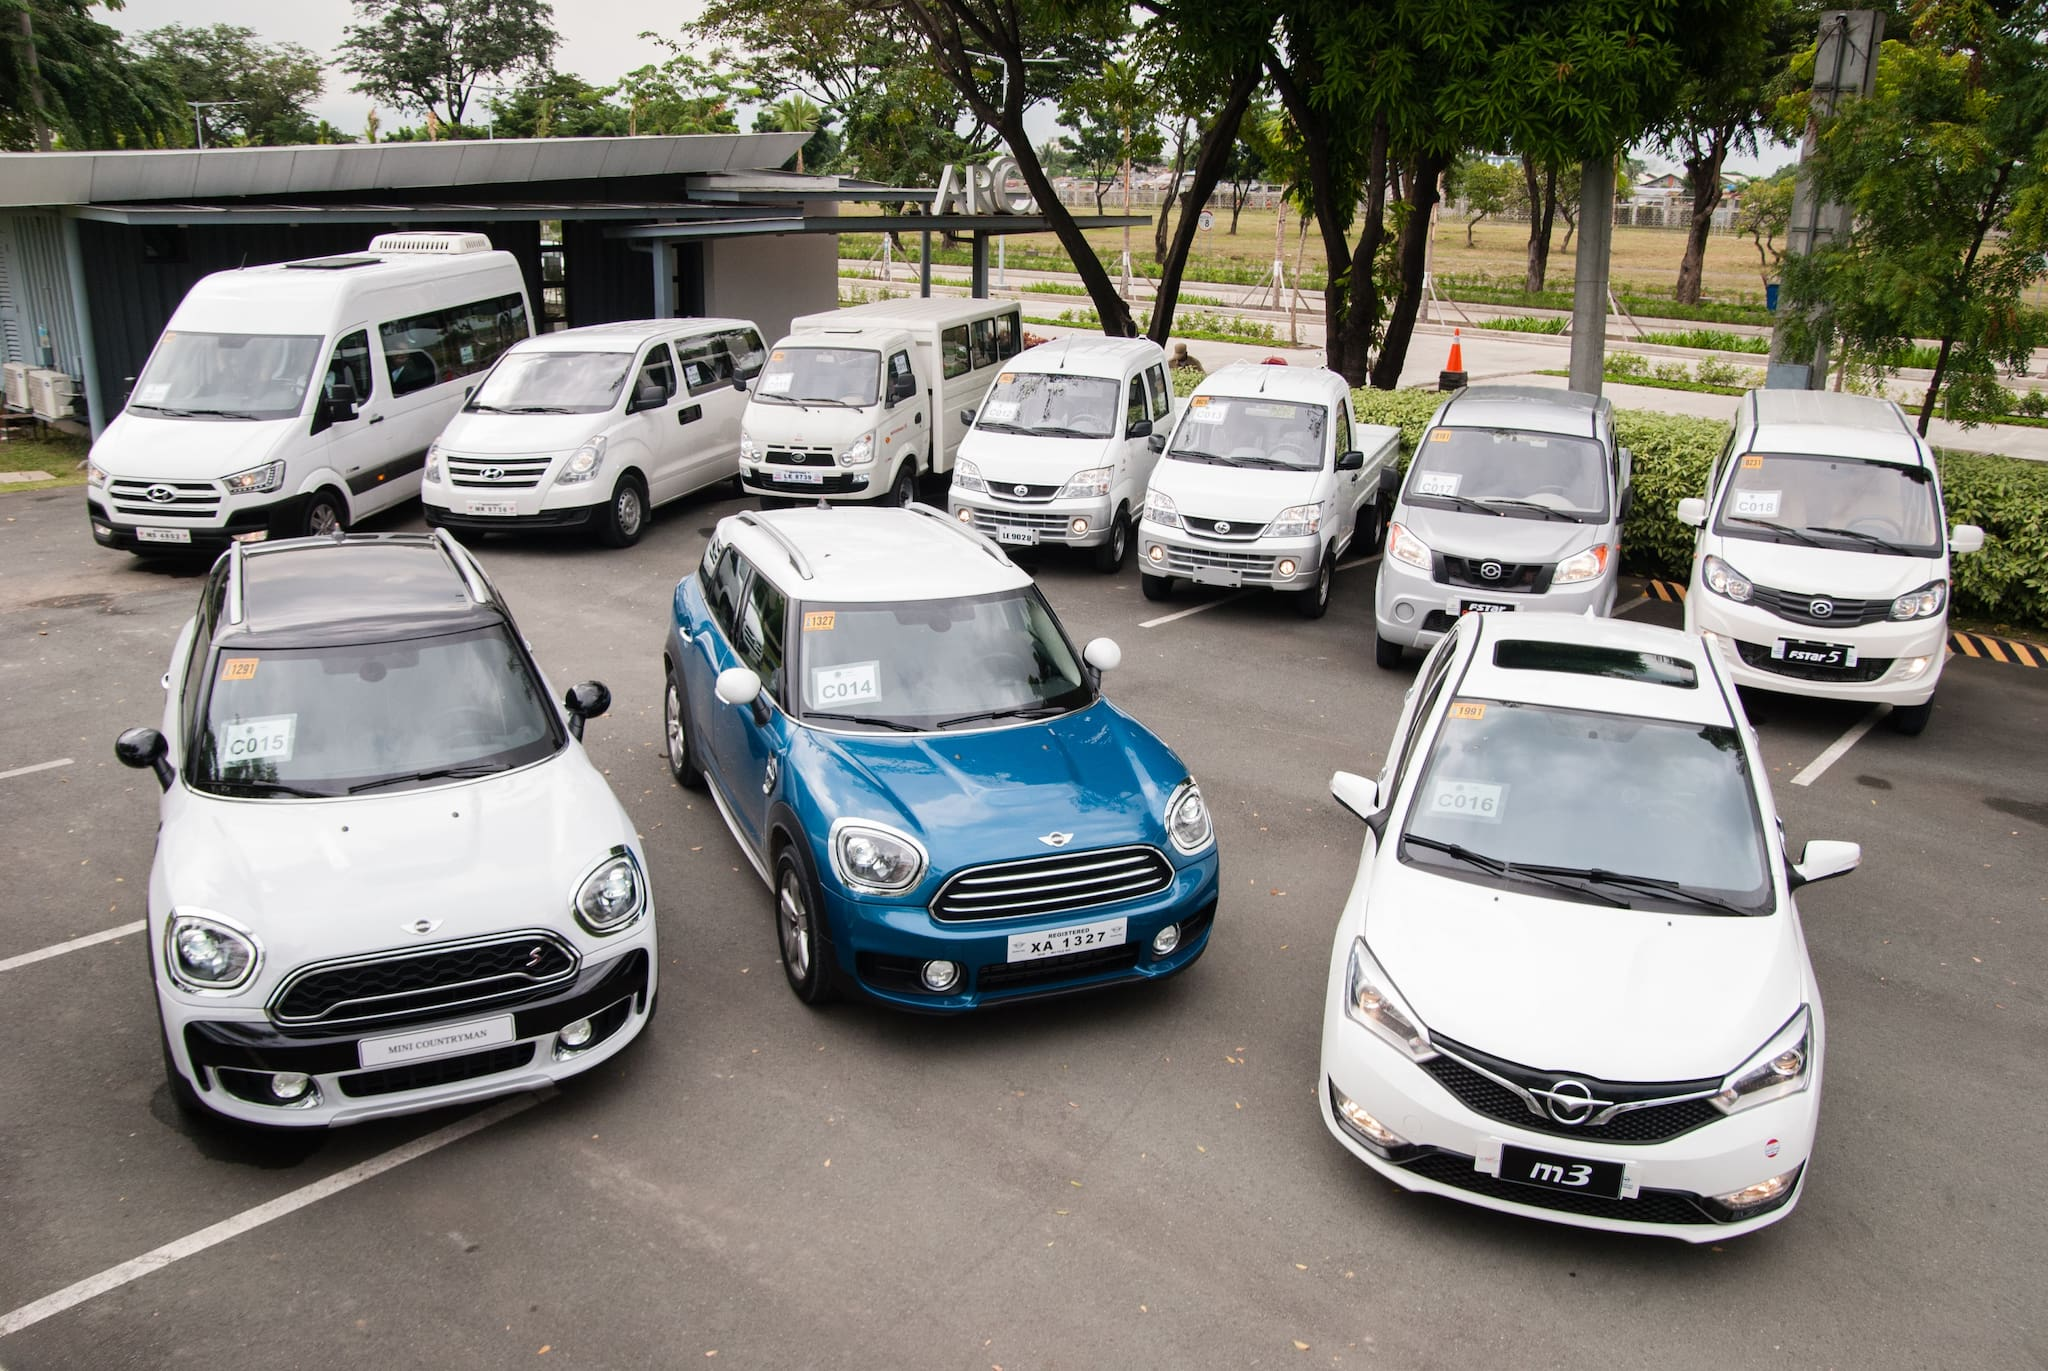 Car Awards Group Wraps Up 2nd Day of Car, Truck of the Year Search